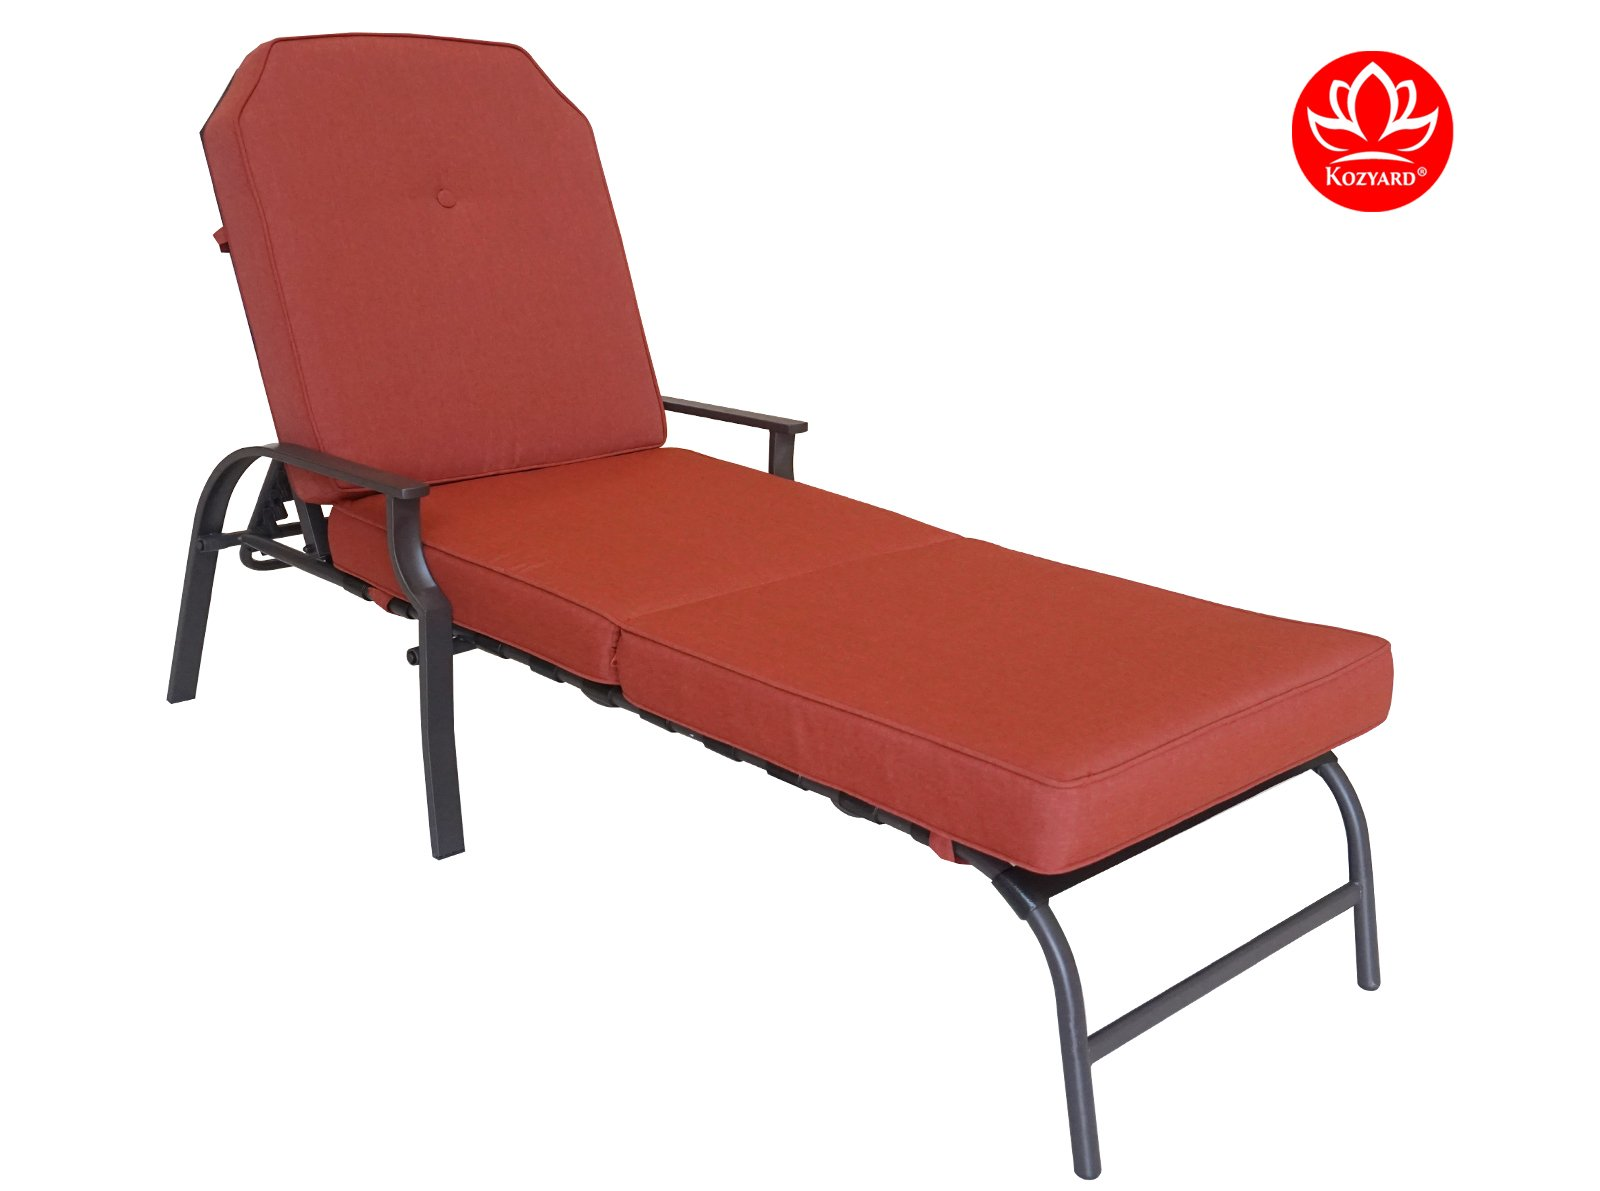 Kozyard Maya Outdoor Chaise Lounge Weather & Rust Resistant Steel Chair with Polyester Fabric Cushion For Pool, Patio, Deck or Yard (Terracotta)